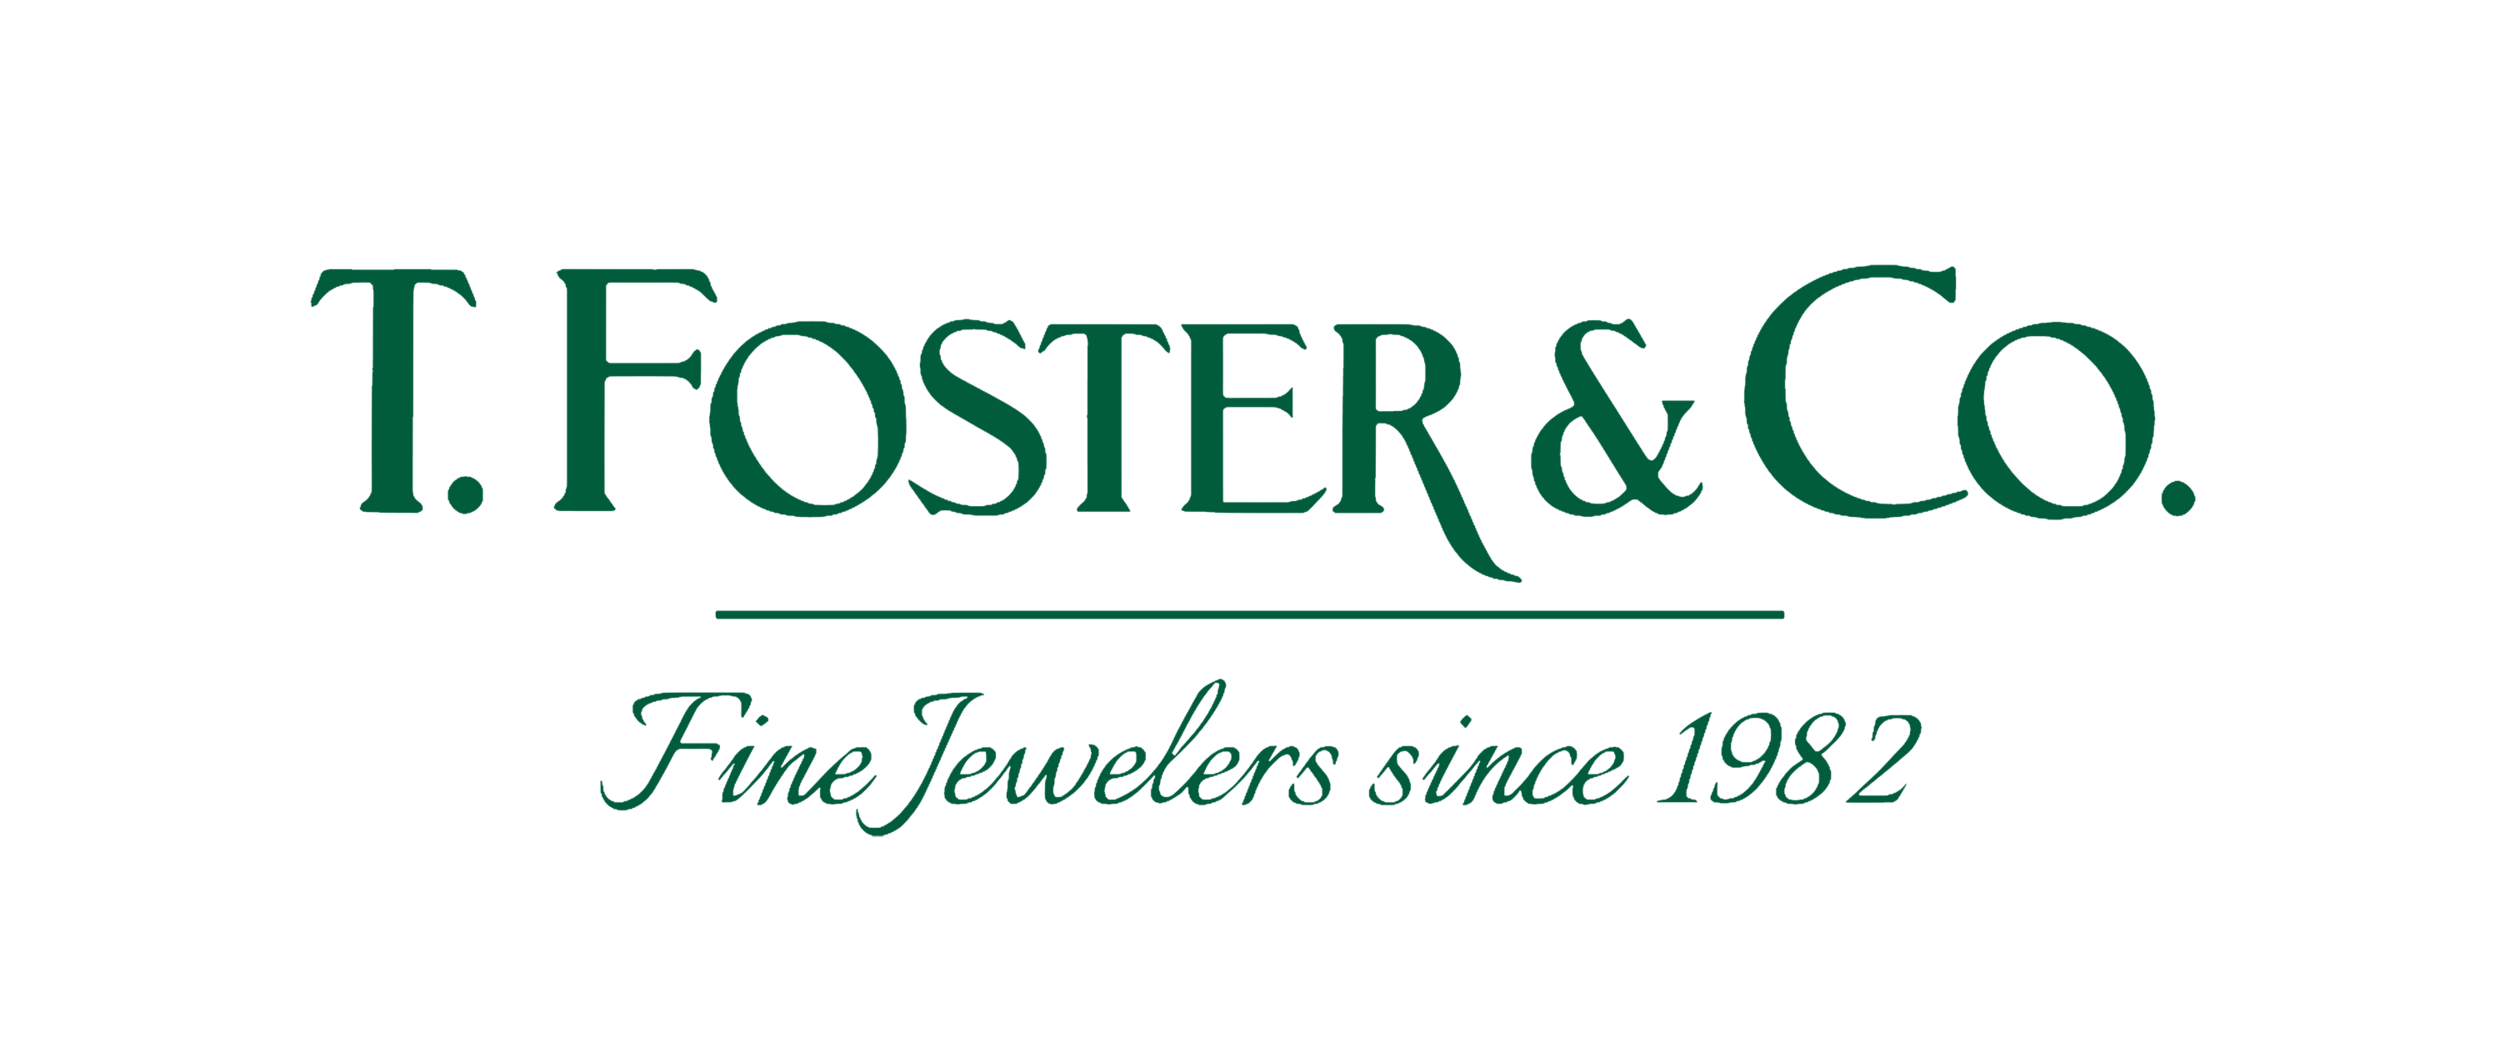 T. Foster & Co.